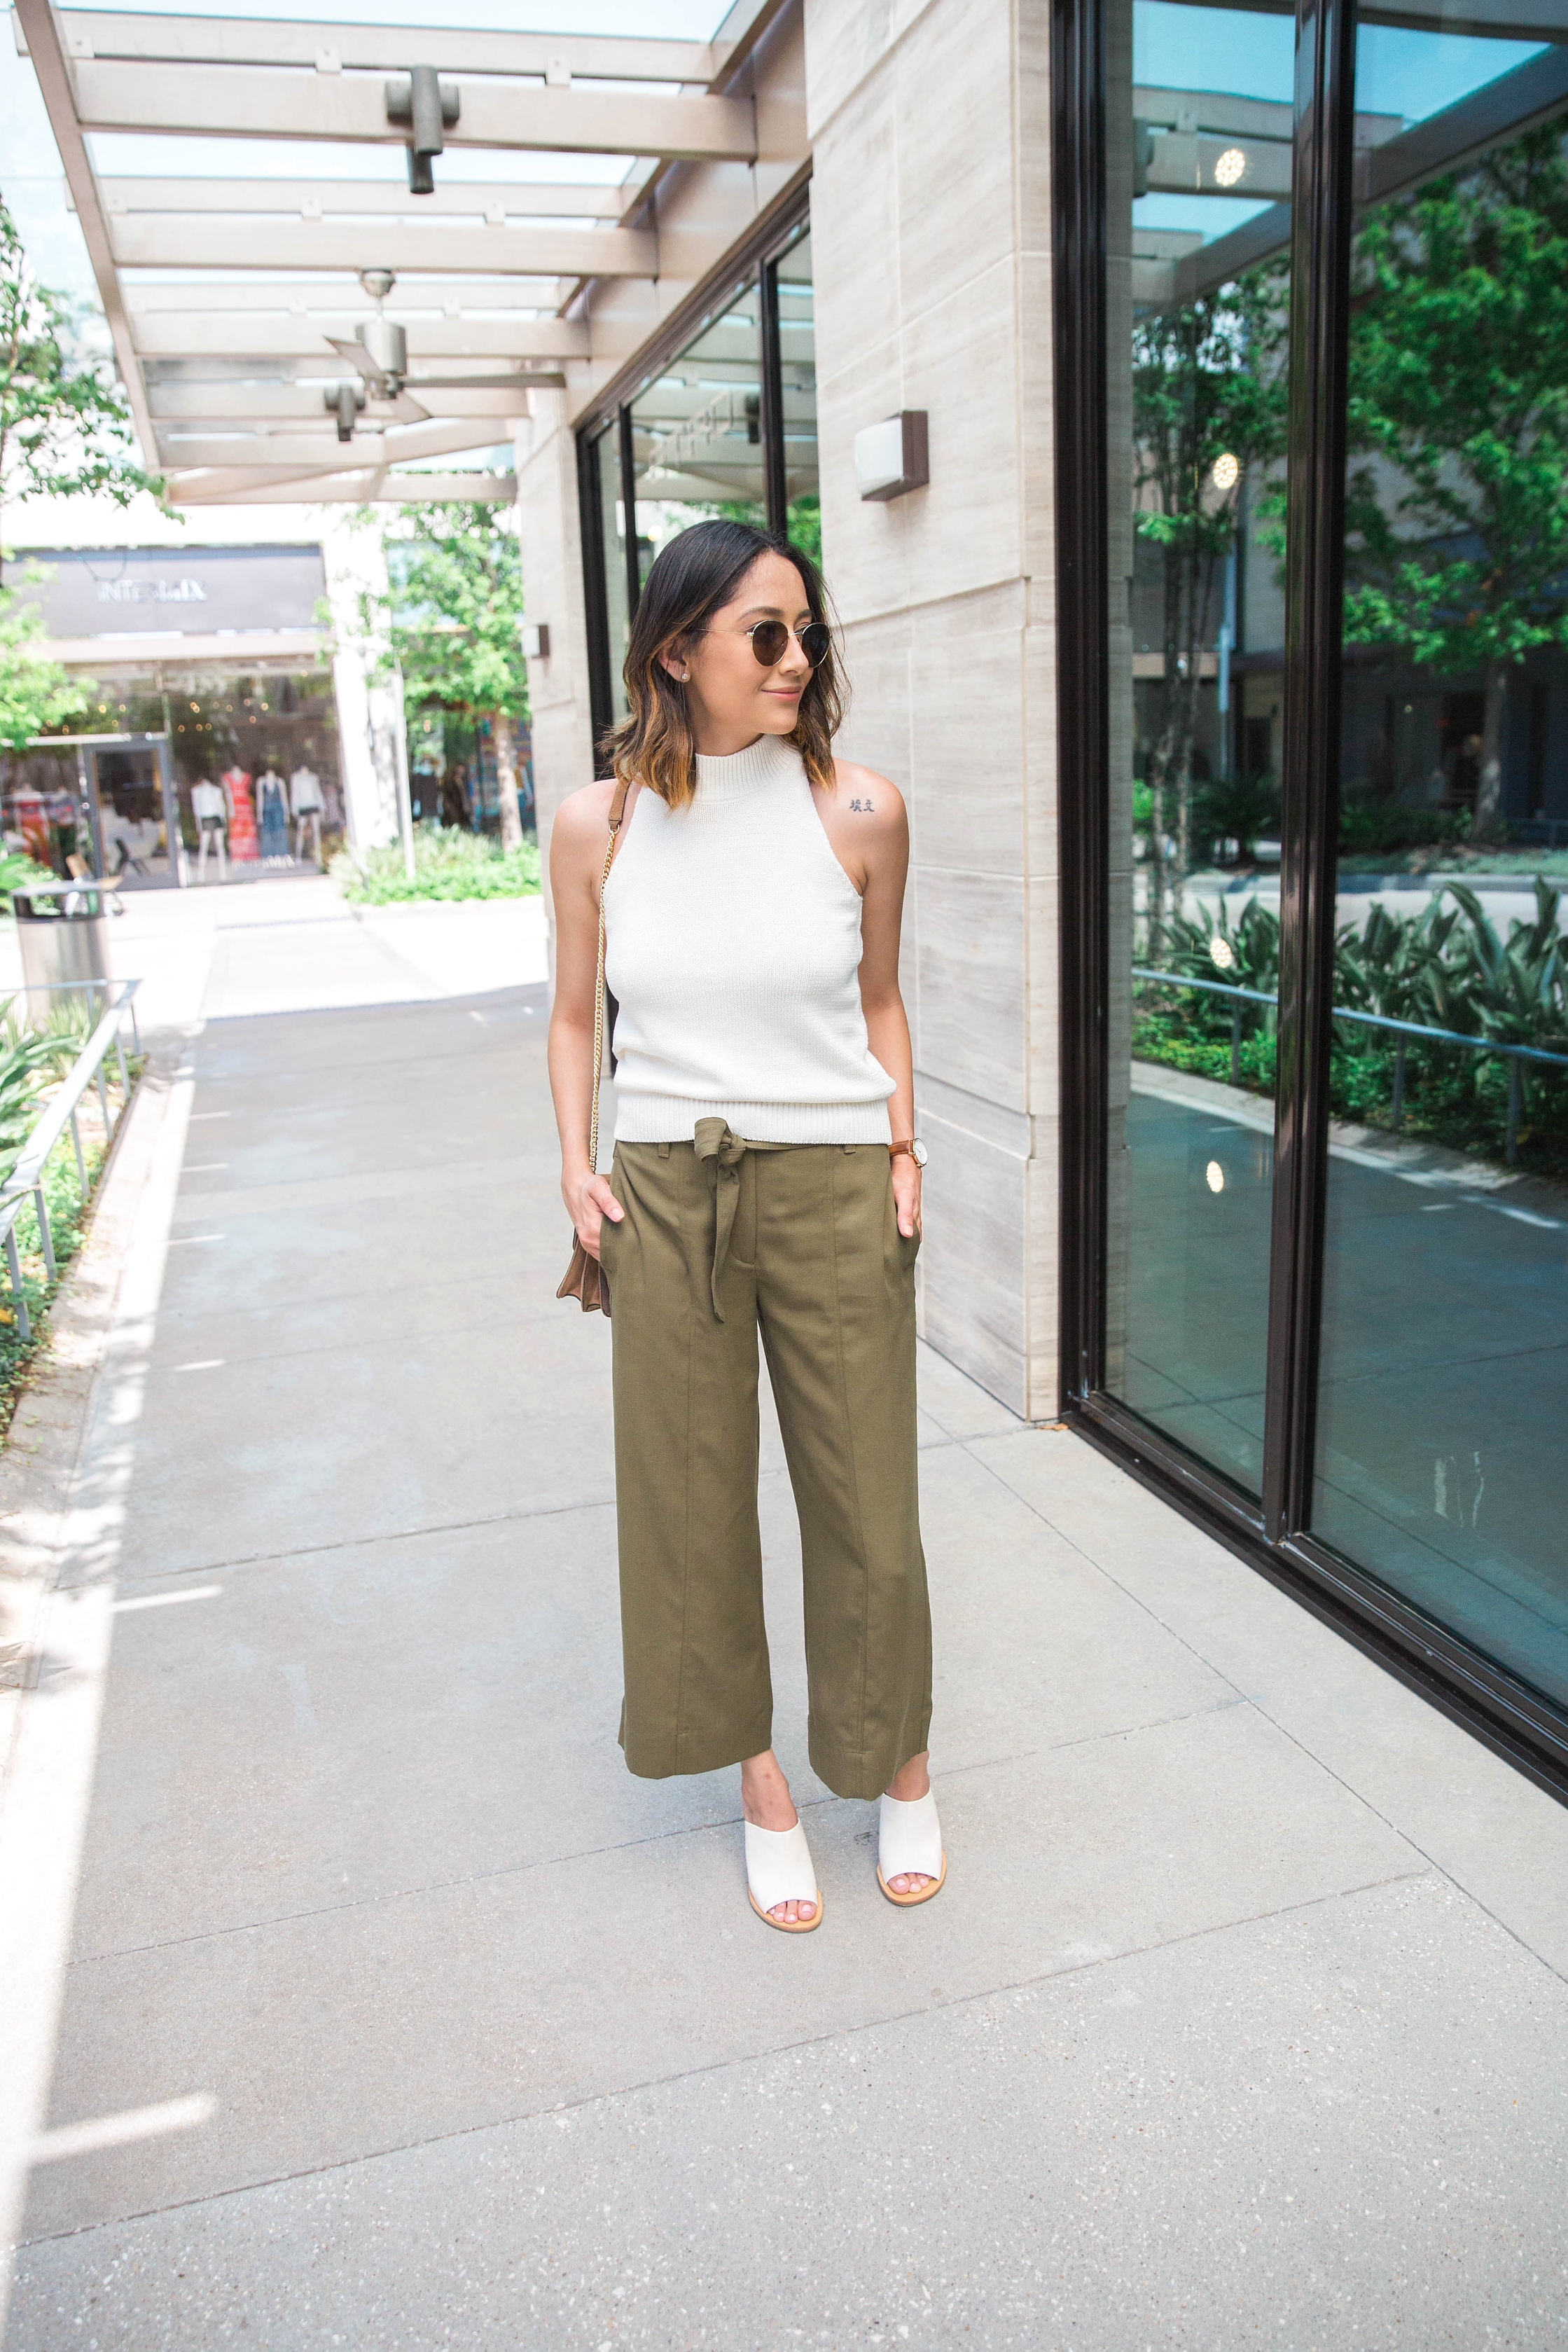 Transitional Pieces You Need In Your Closet Now | Culottes | Sweater Top | Street Style